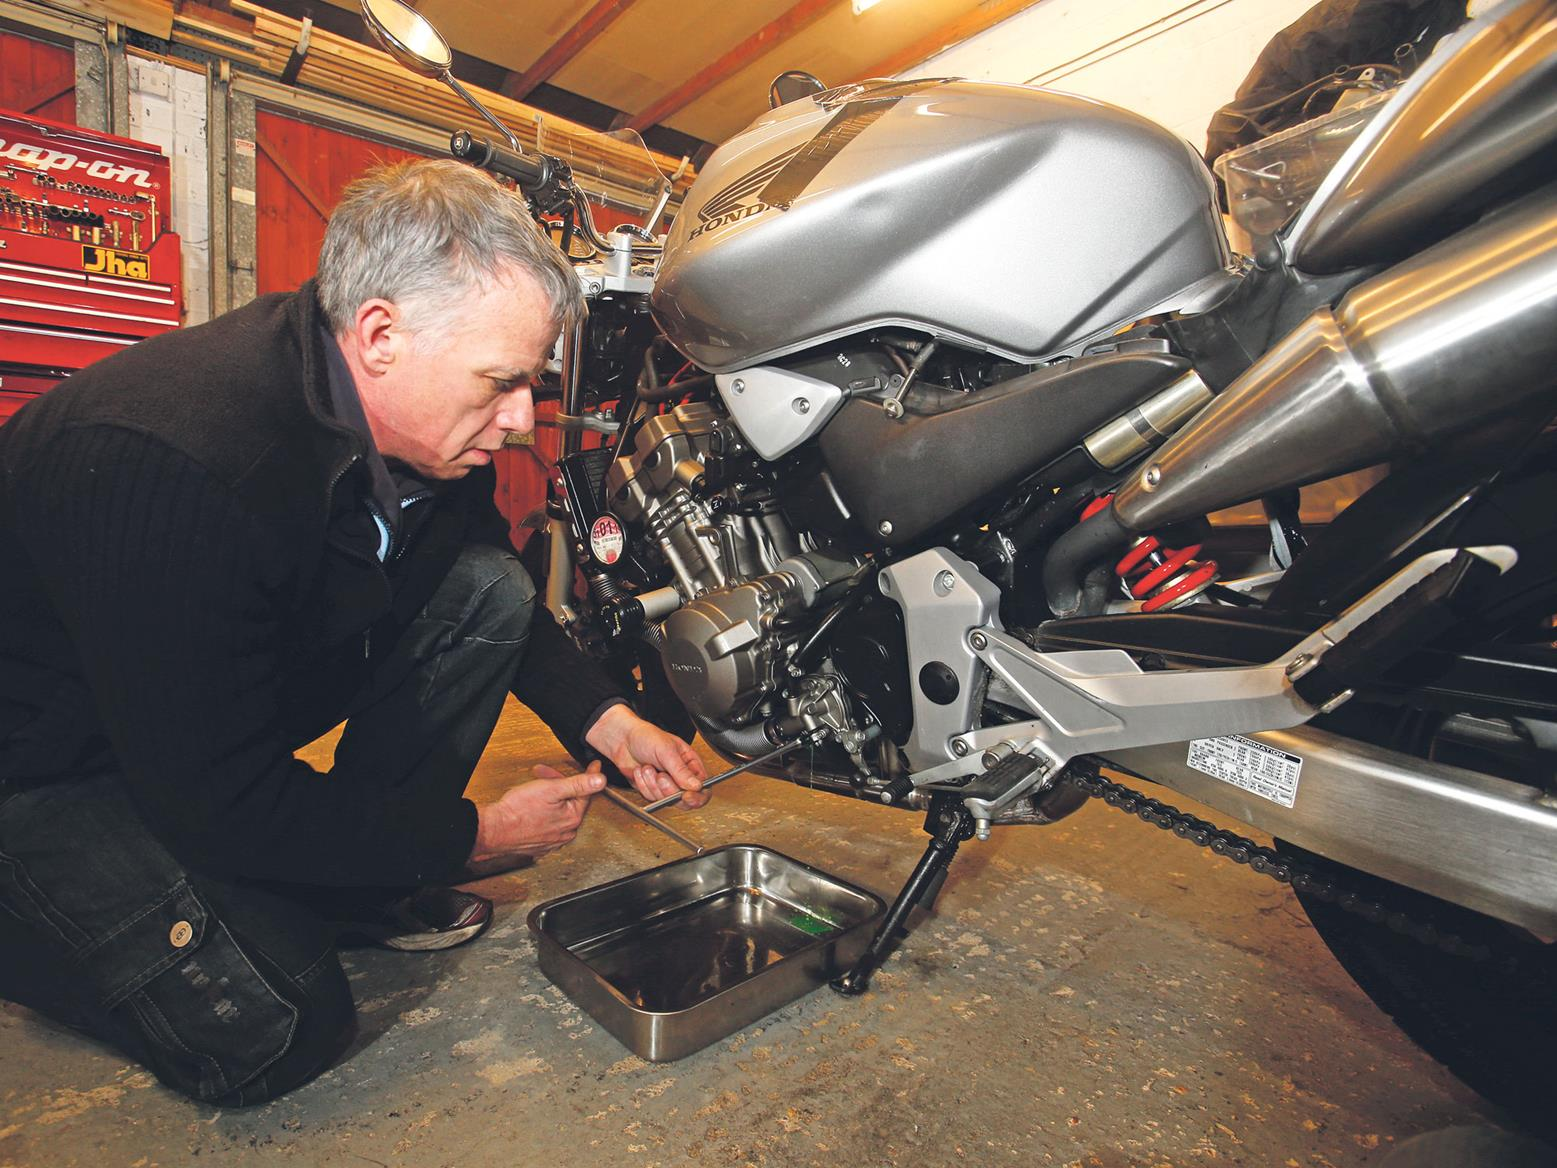 If your motor is gurgling you could have a coolant issue